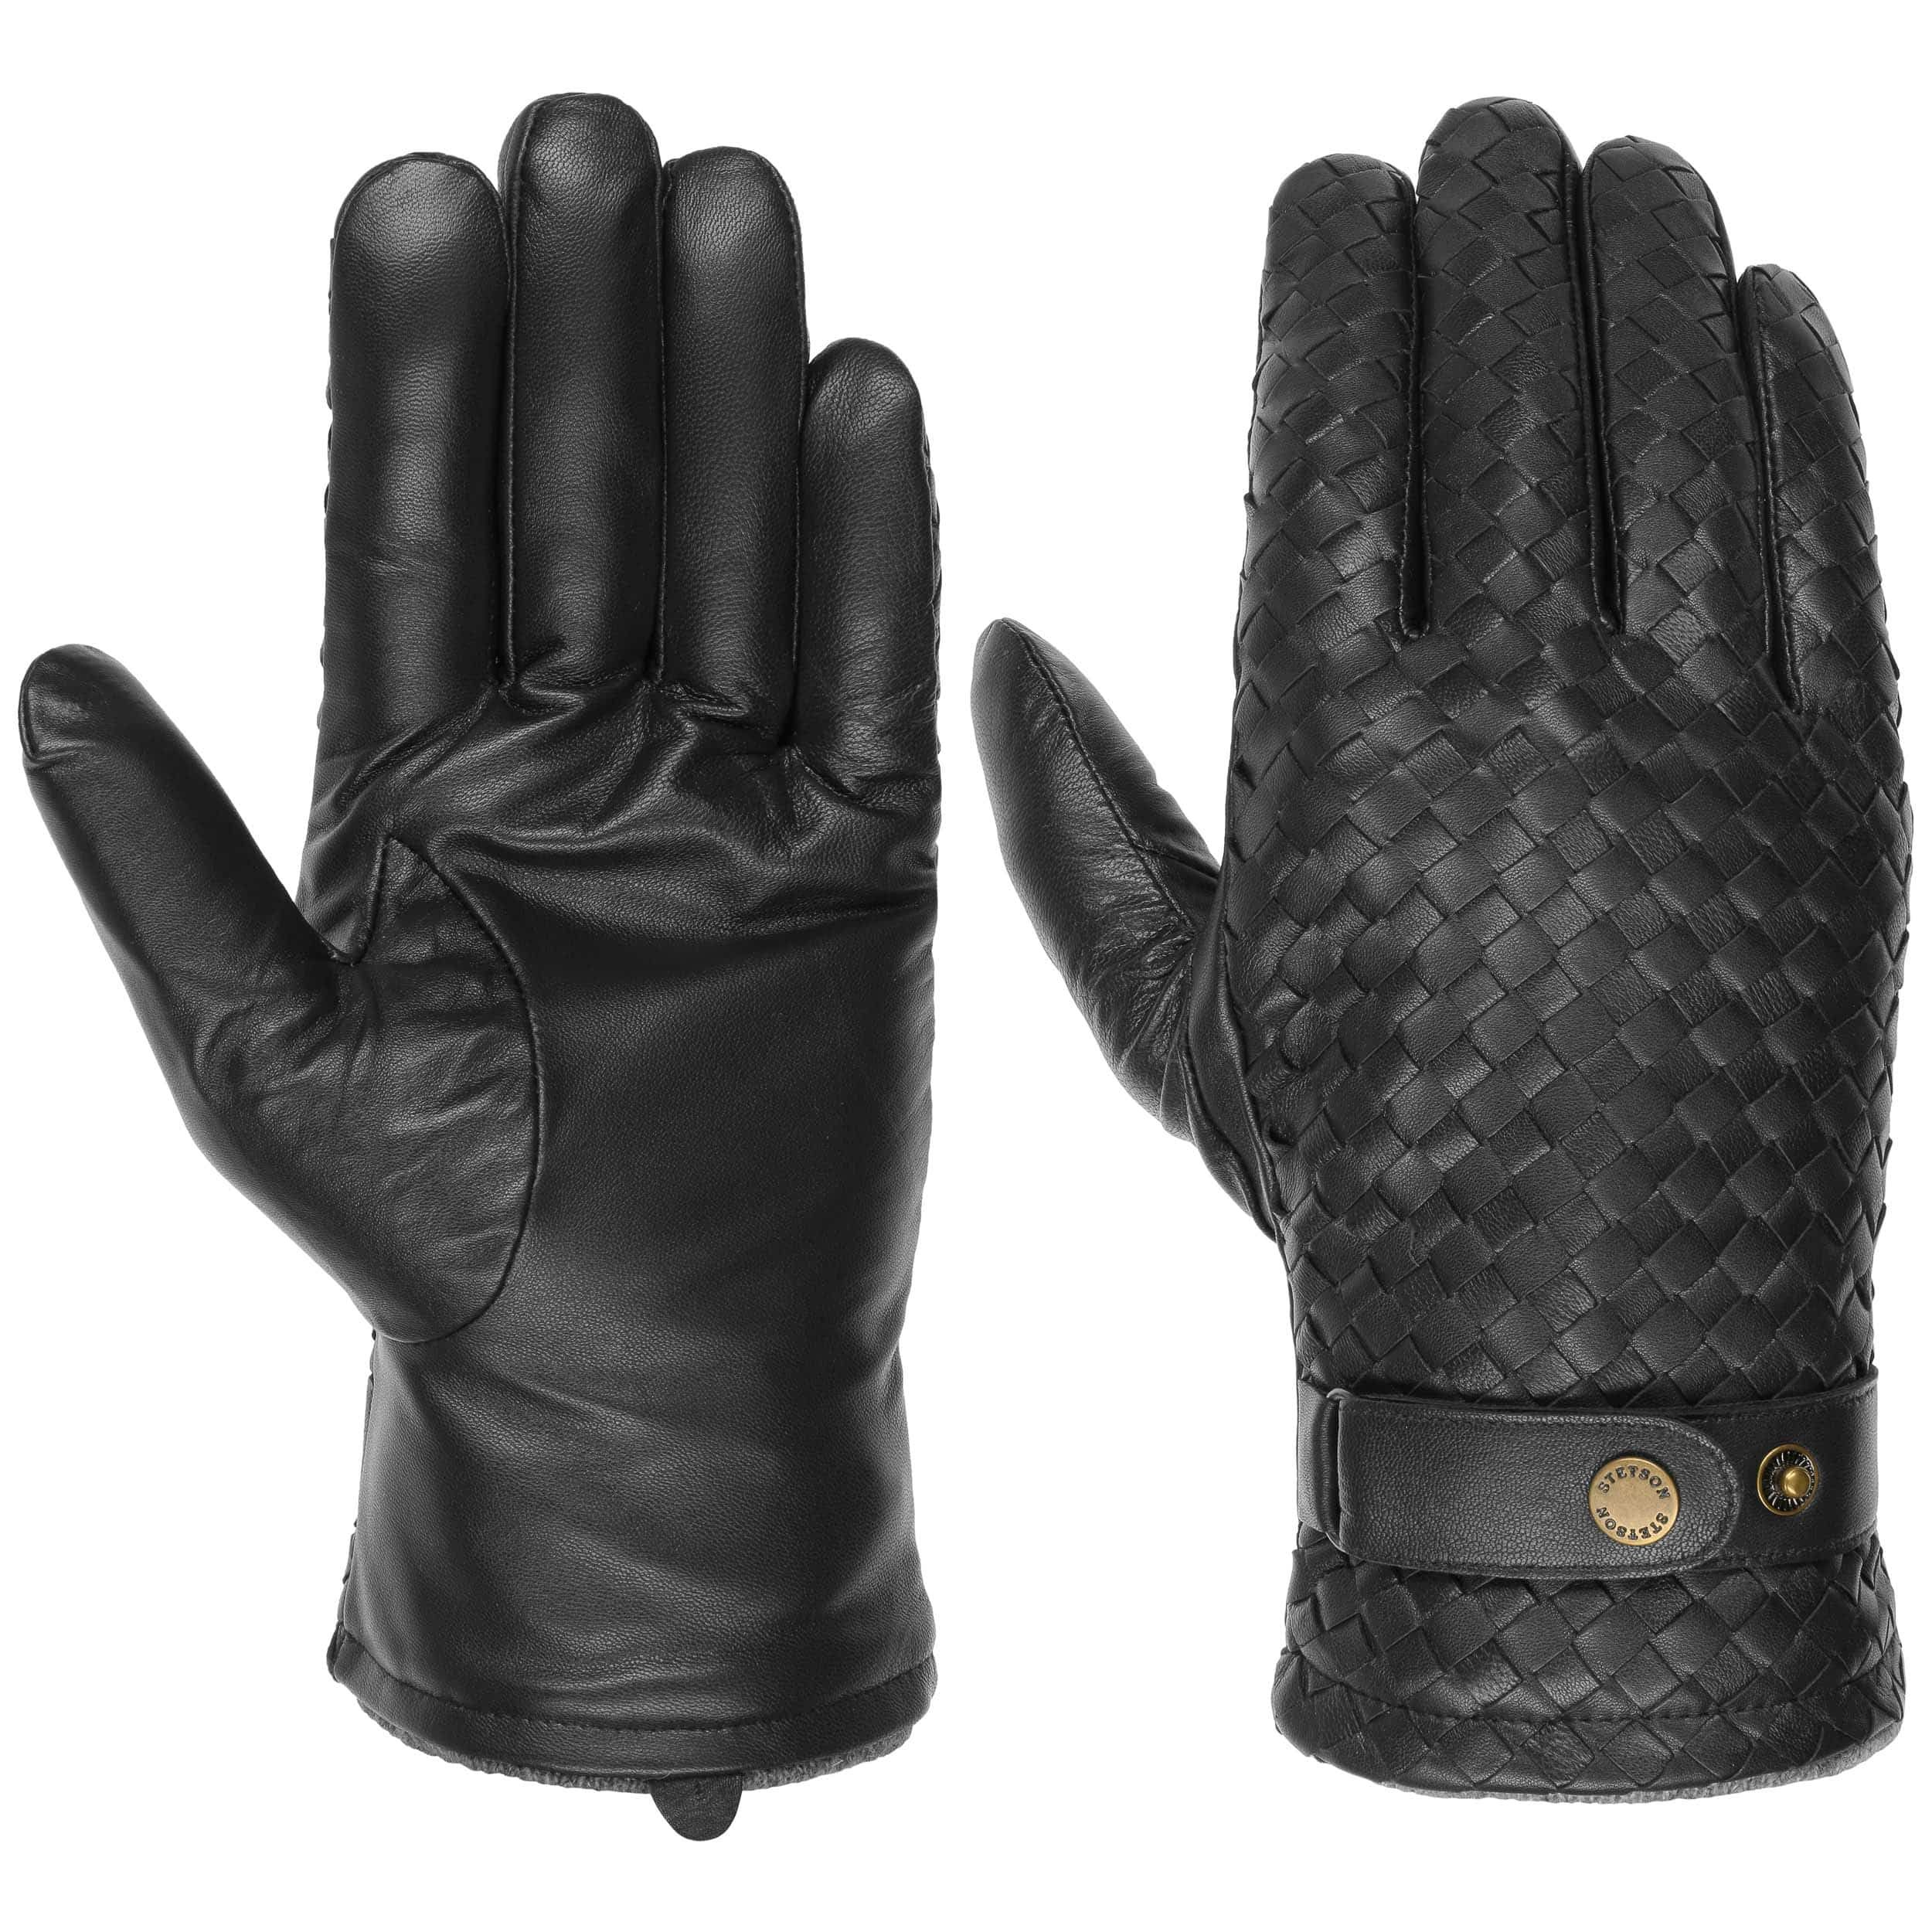 Sheep Nappa Leather Gloves black